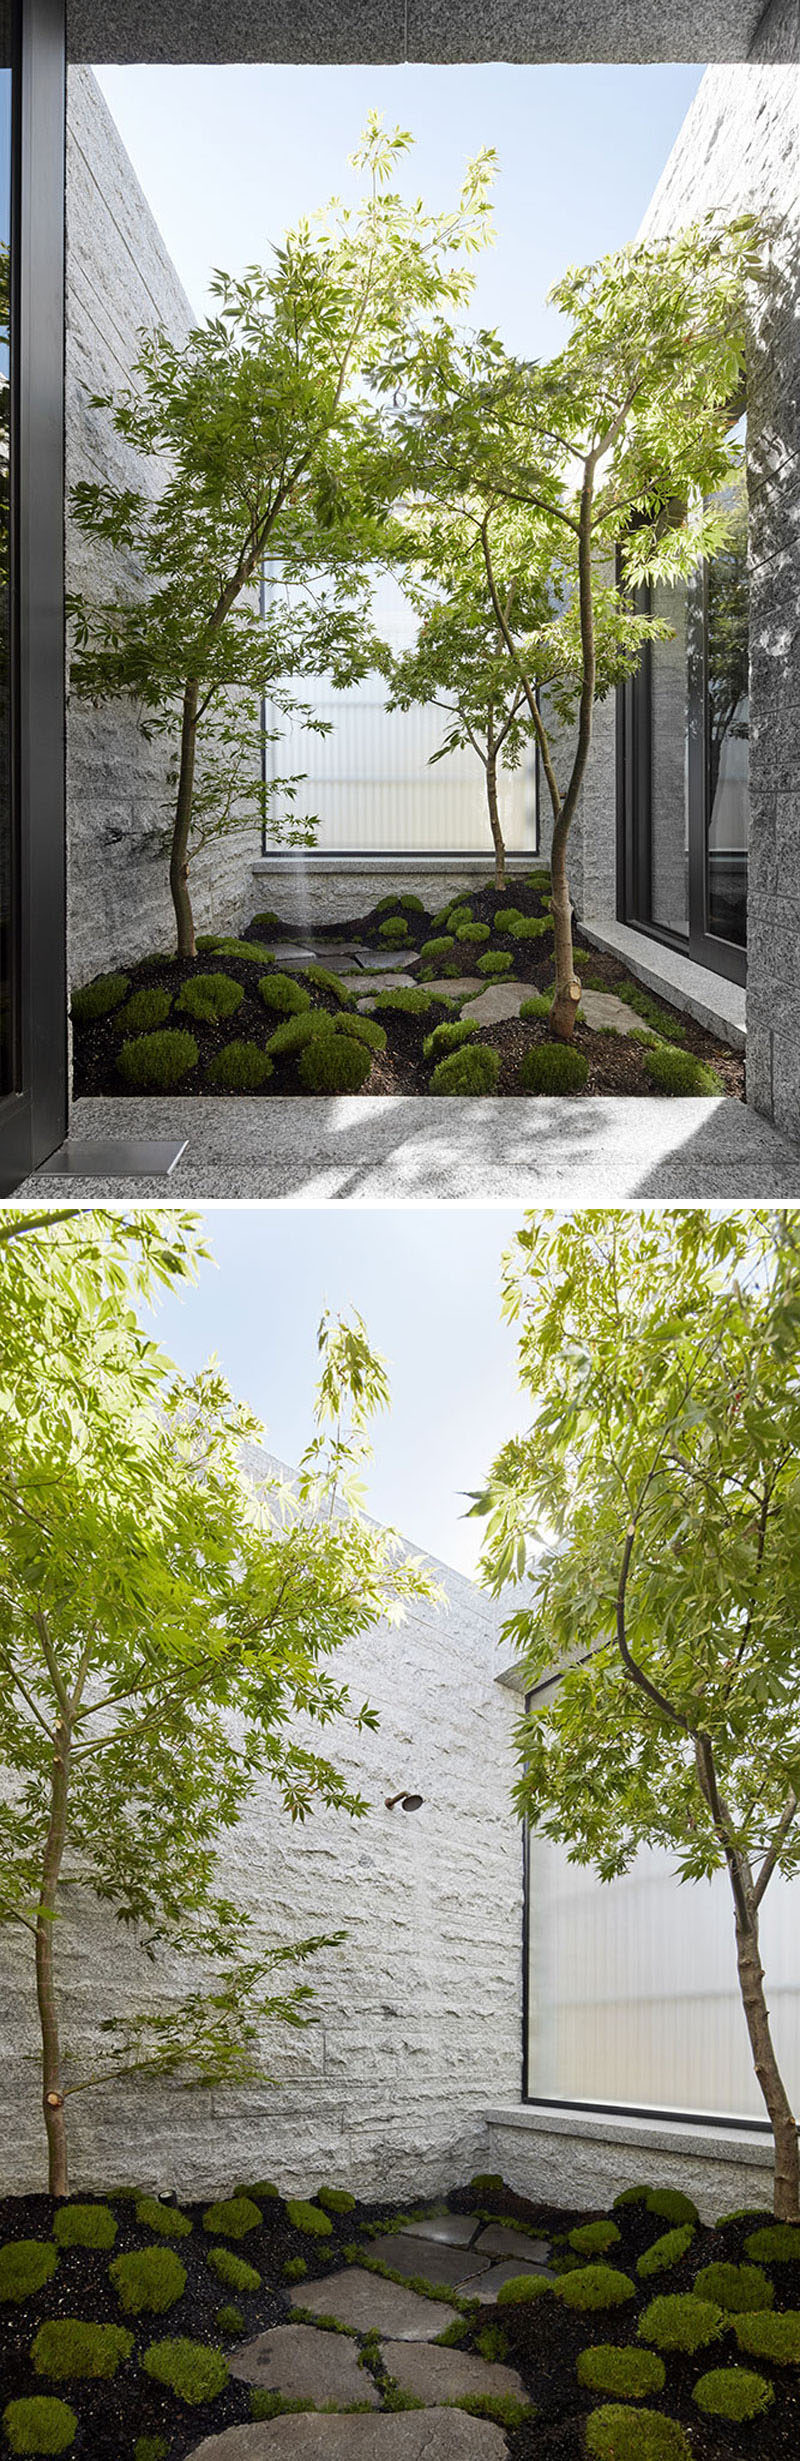 Granite and glass have been used to surround a private outdoor shower in a secluded Japanese garden that's connected to the master bedroom. #OutdoorShower #GraniteWalls #JapaneseGarden